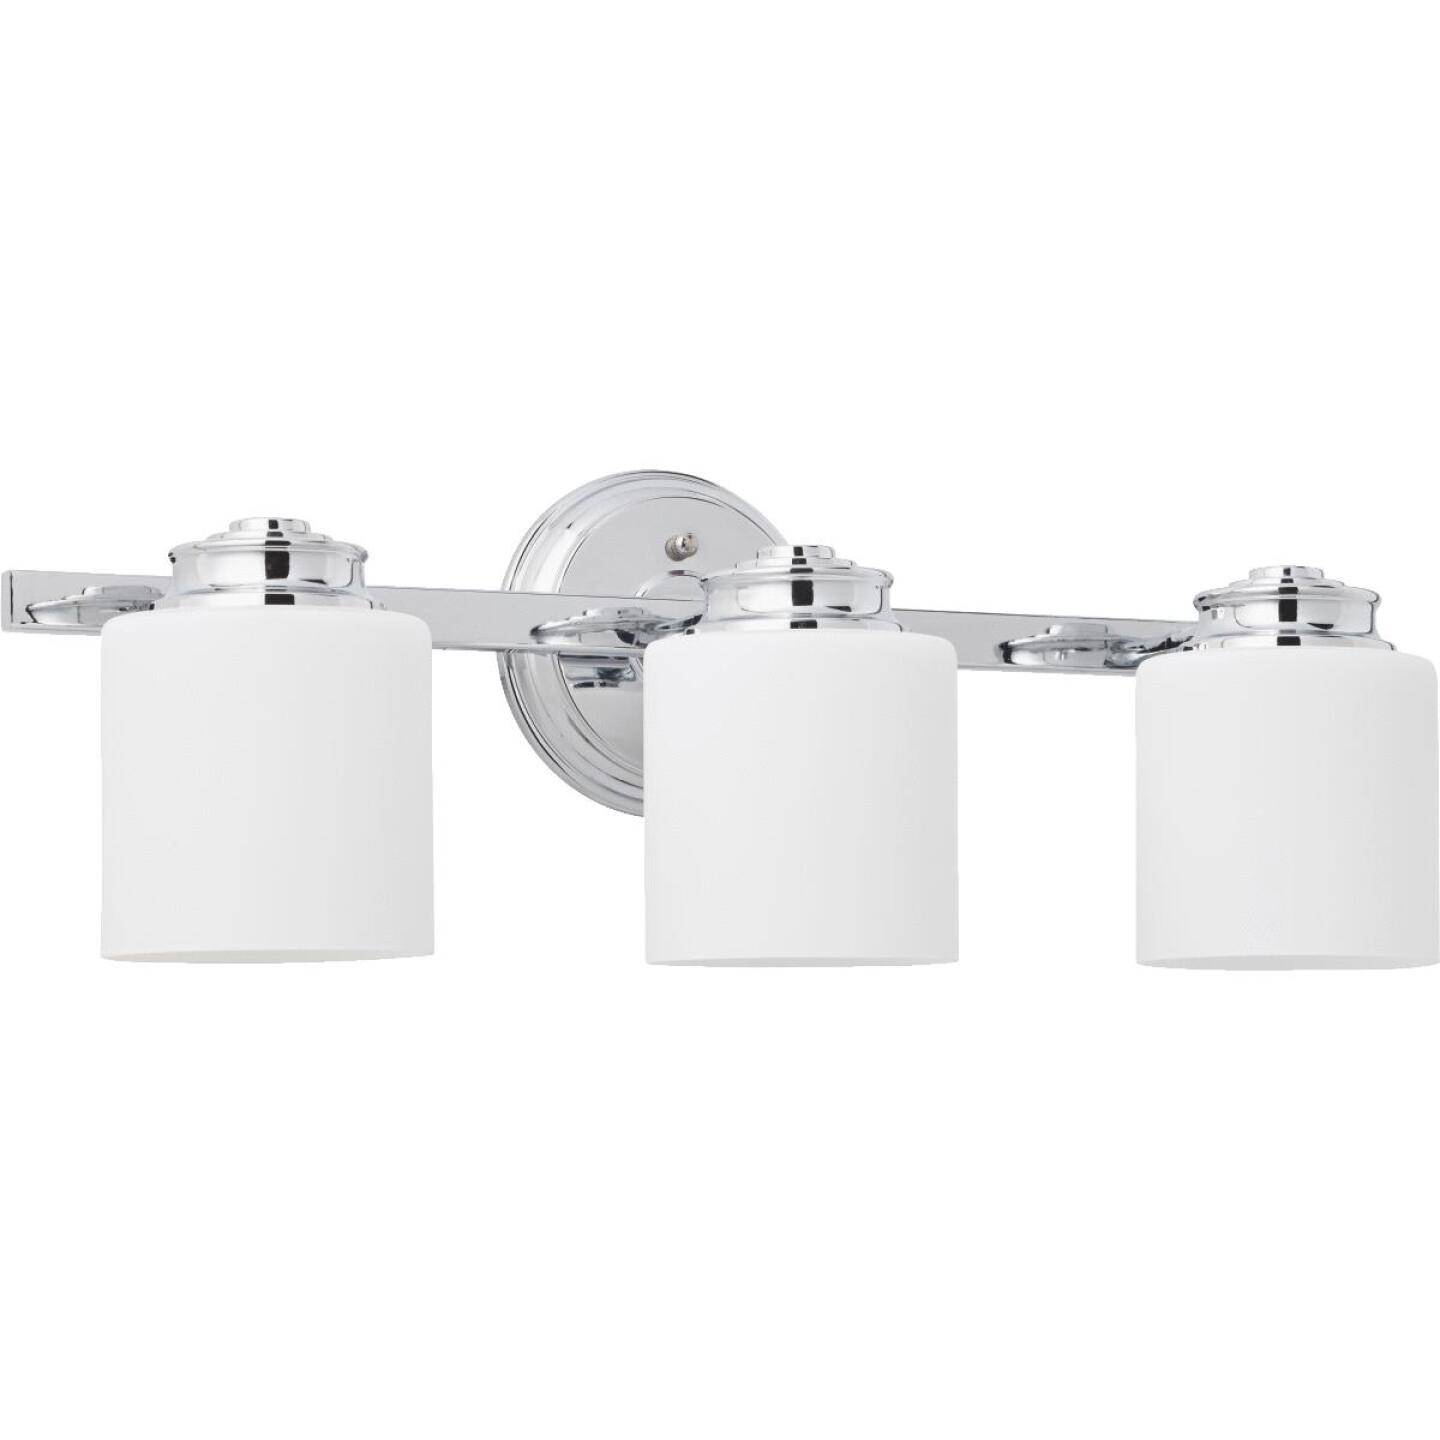 Home Impressions Crawford 3-Bulb Polished Chrome Bath Light Bar Image 1